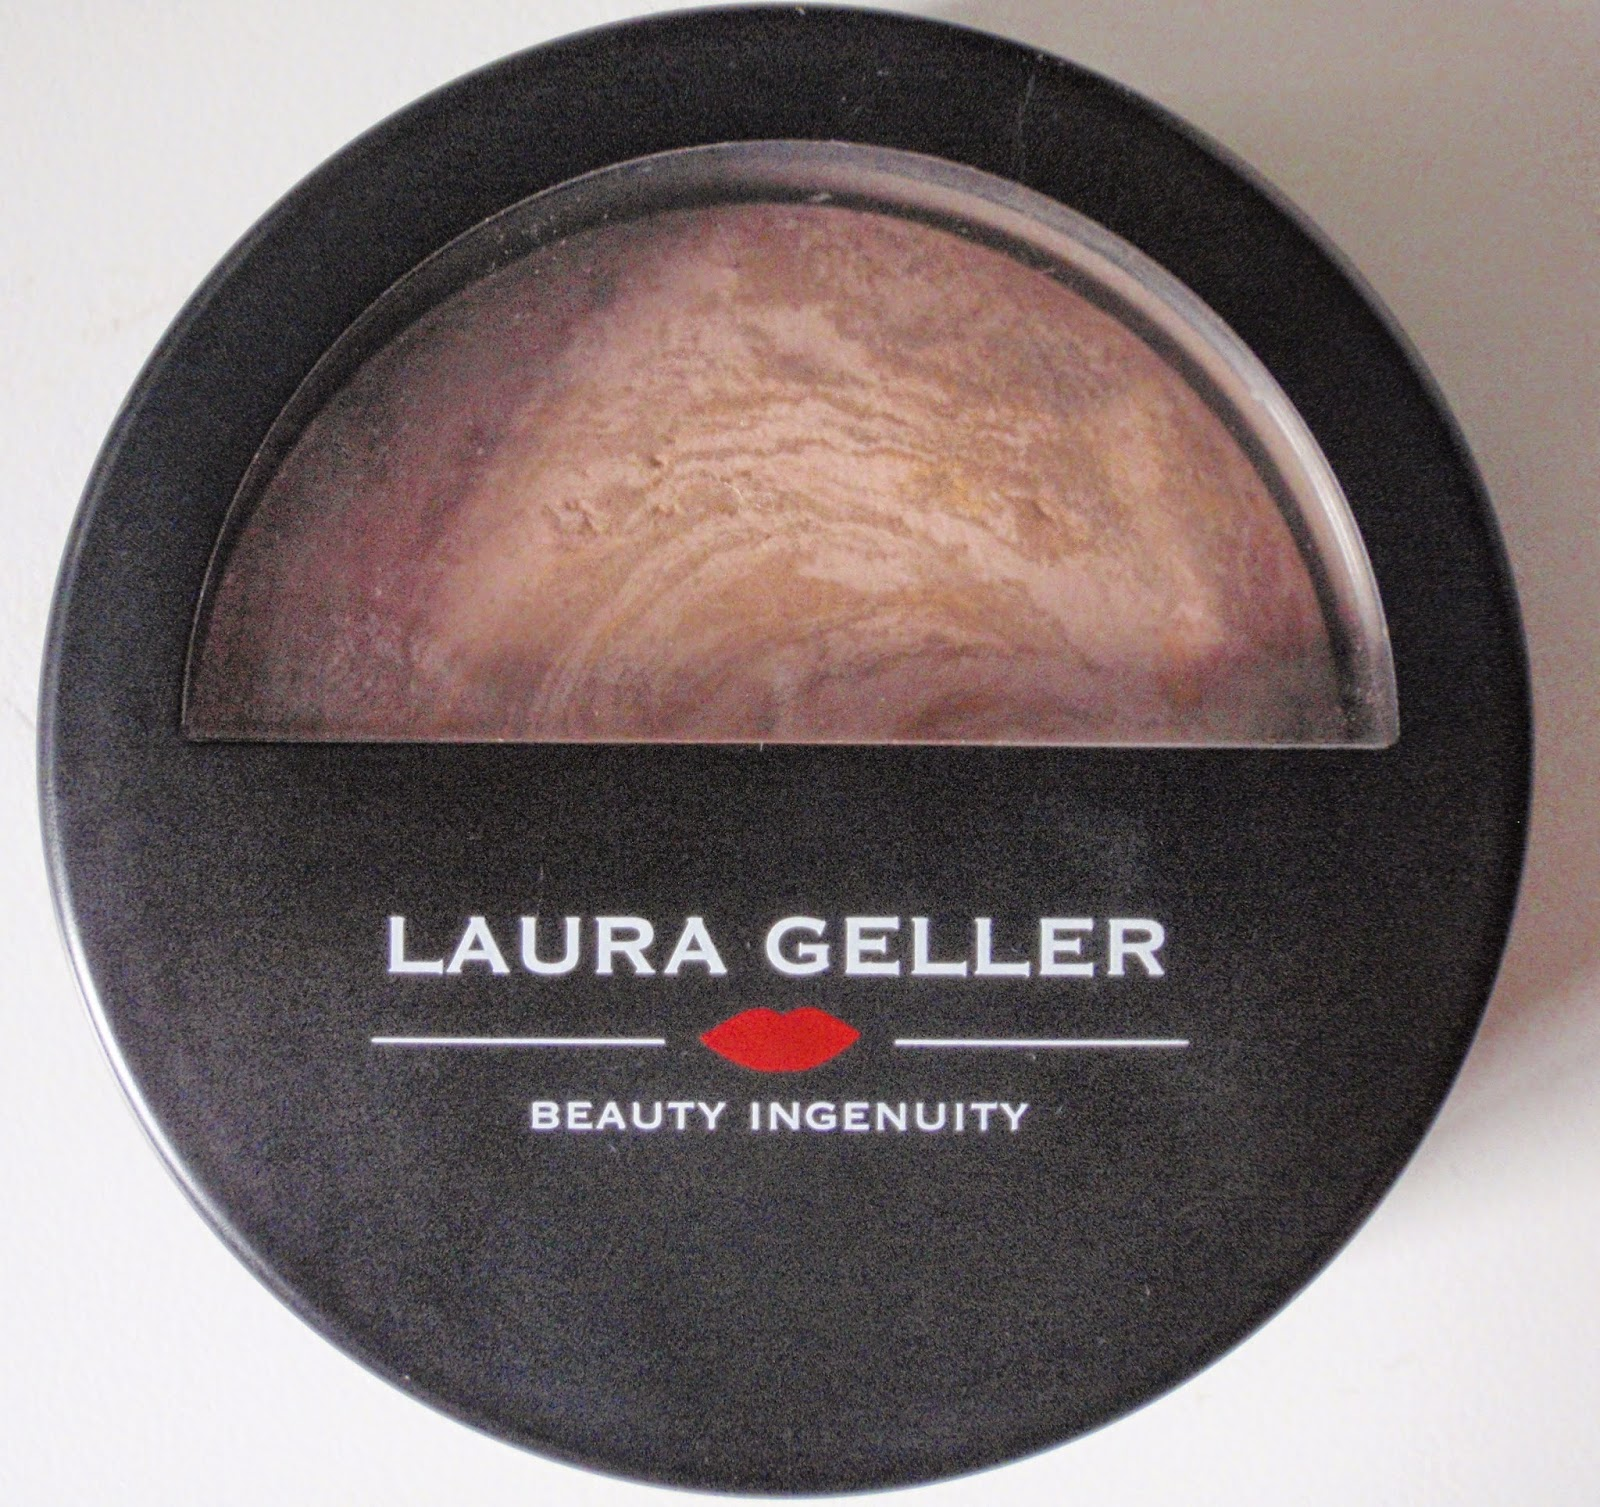 Laura Geller Balance-N-Brighten Foundation